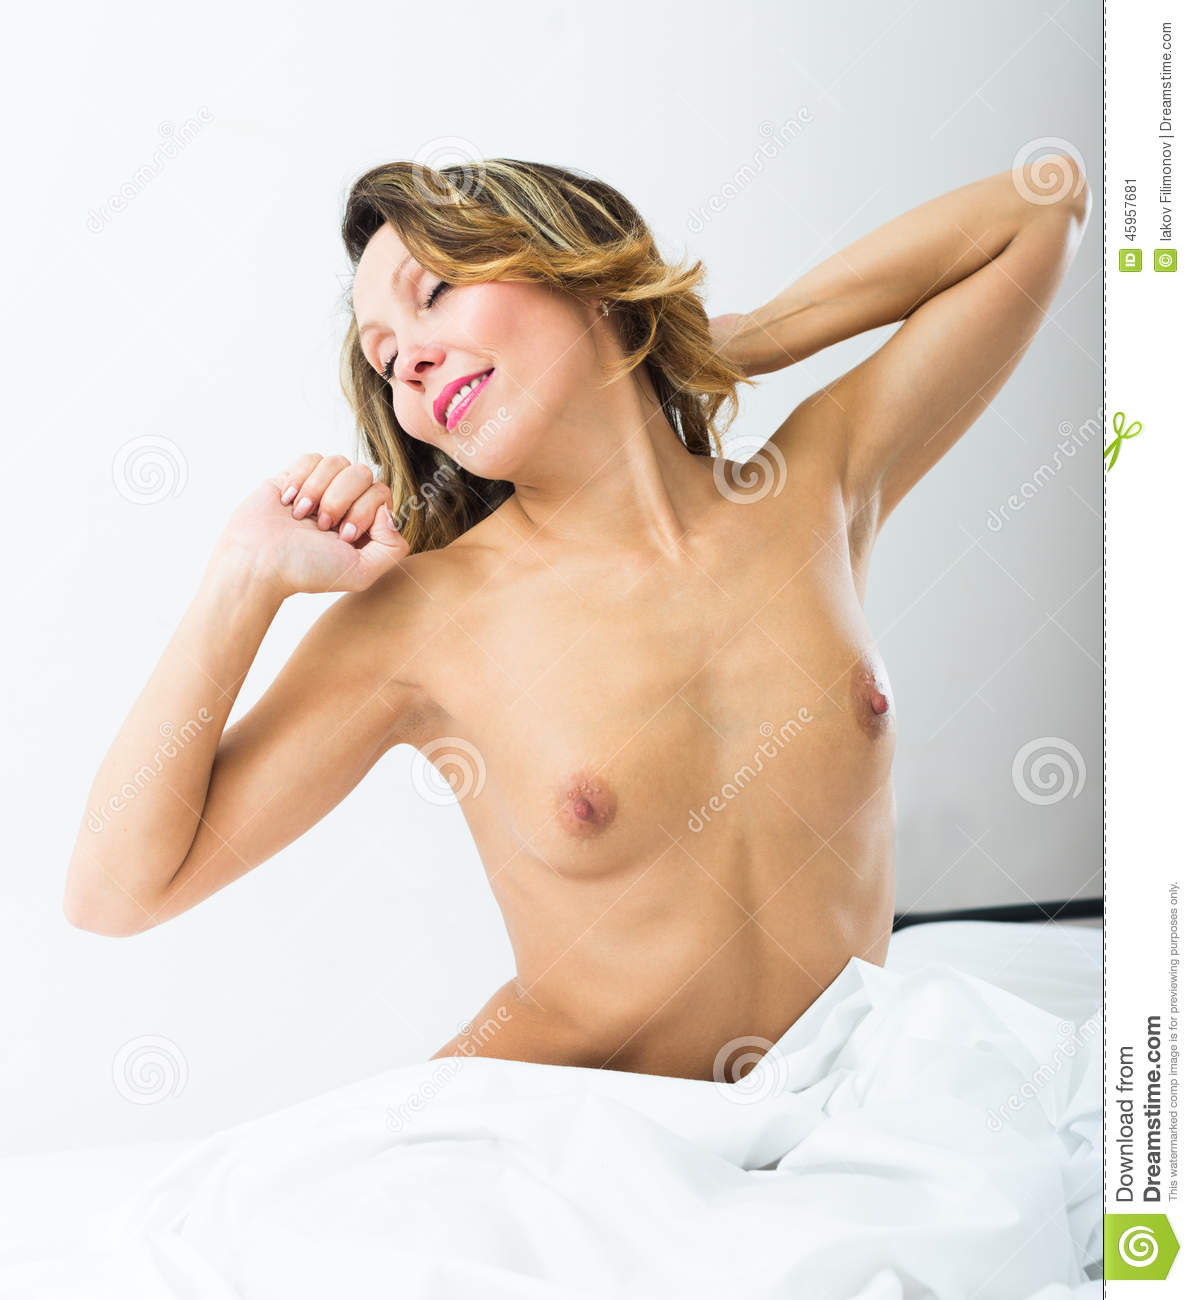 Middle Aged Women Fucked 109